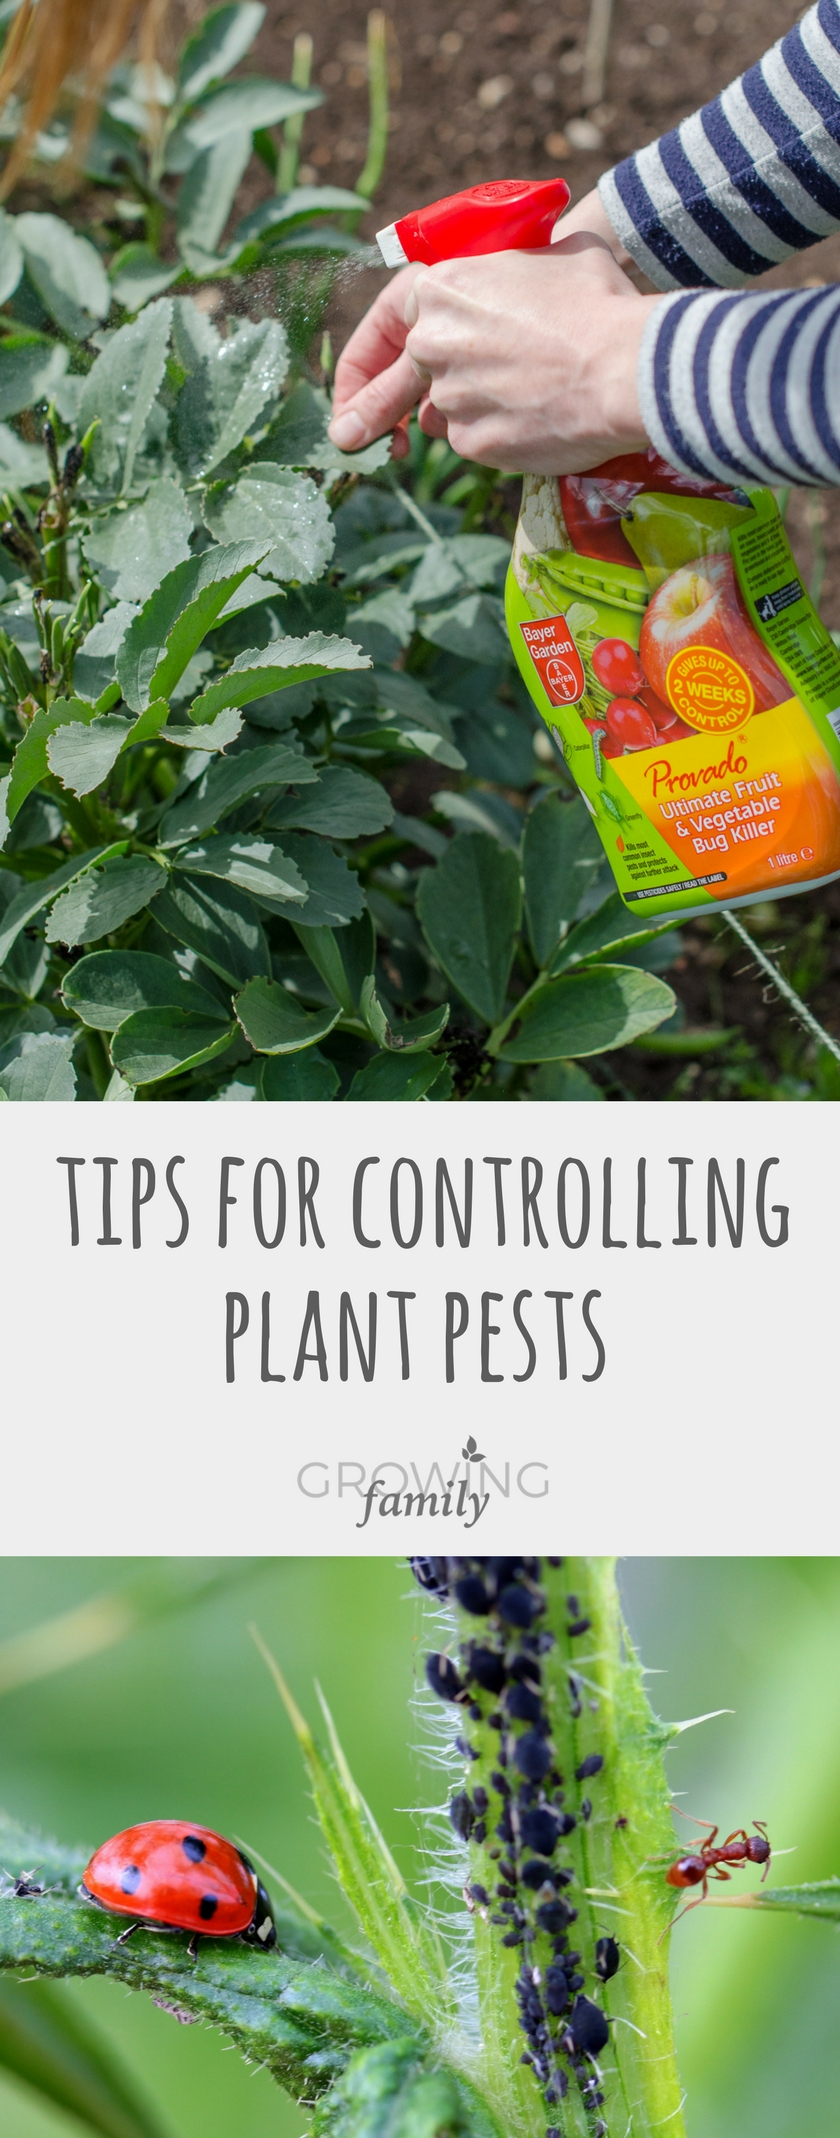 Tips For Controlling Plant Pests